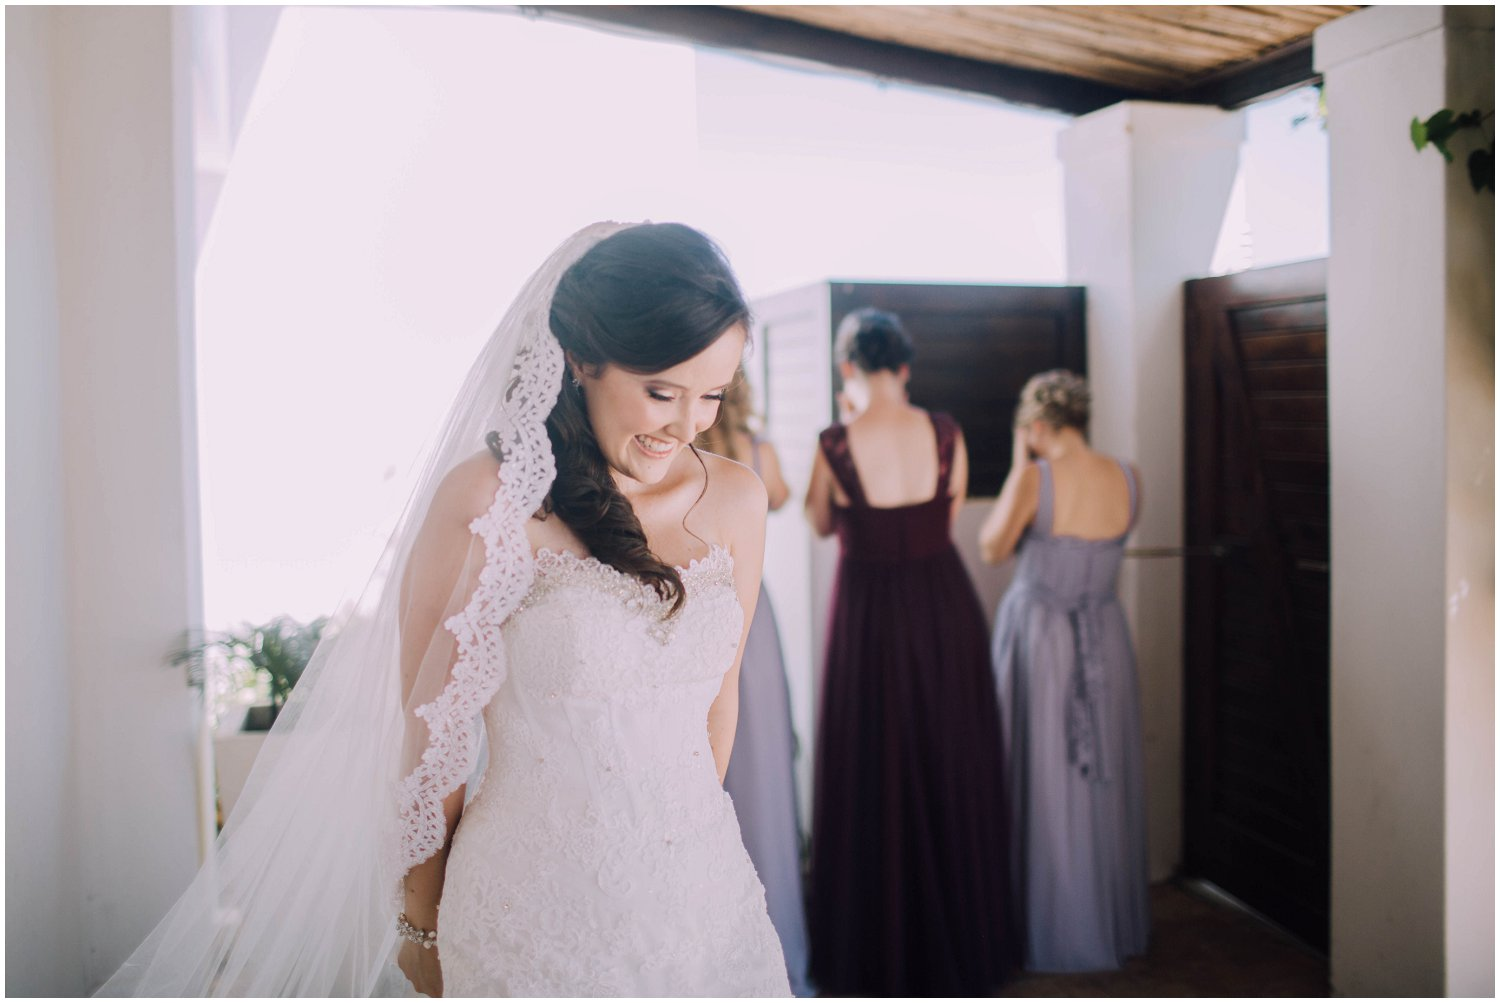 Top Artistic Creative Documentary Wedding Photographer Cape Town South Africa Rue Kruger_0239.jpg